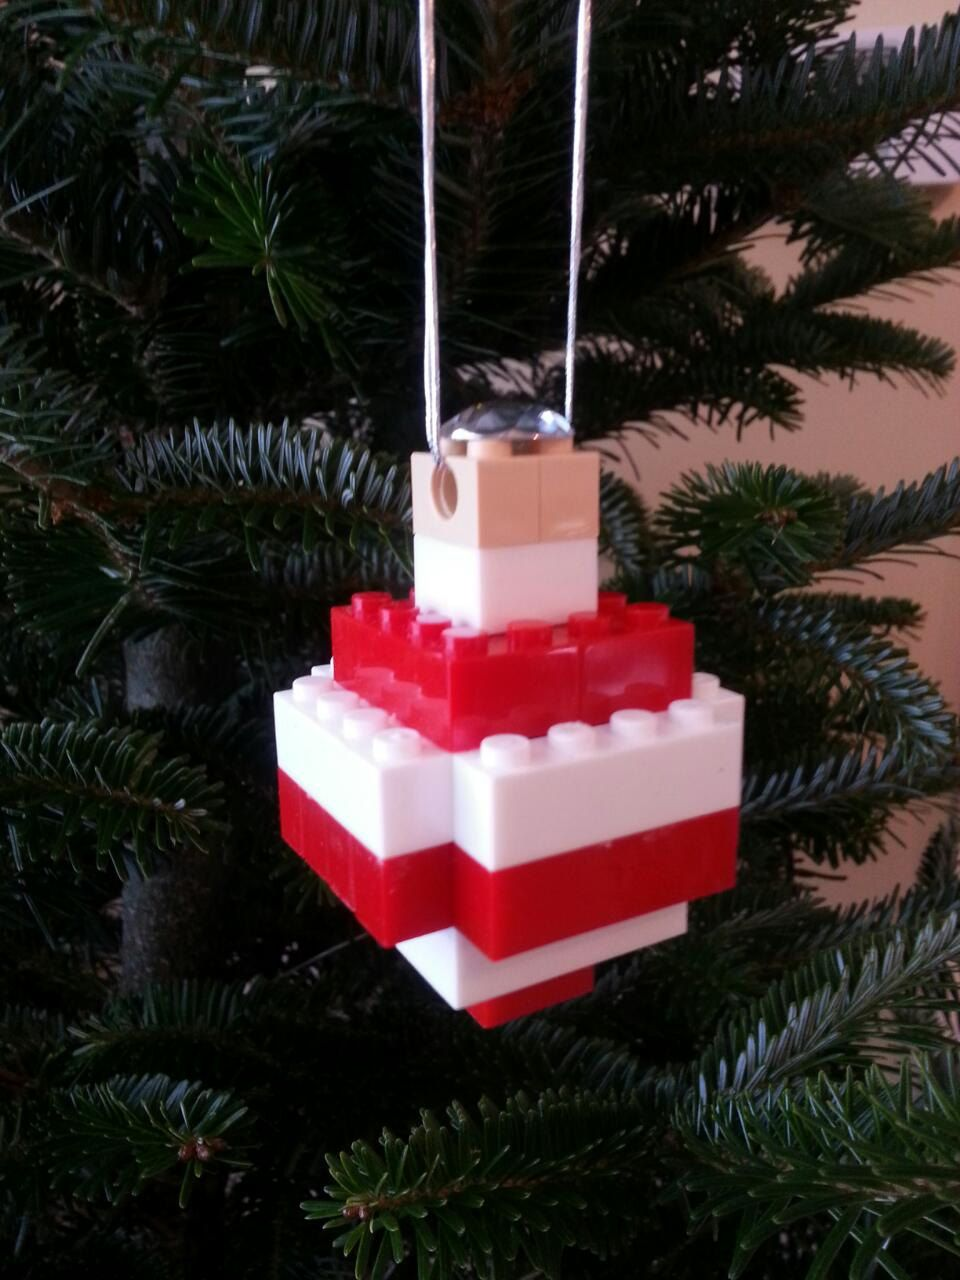 Tree ornament using legolike building blocks in red and white by